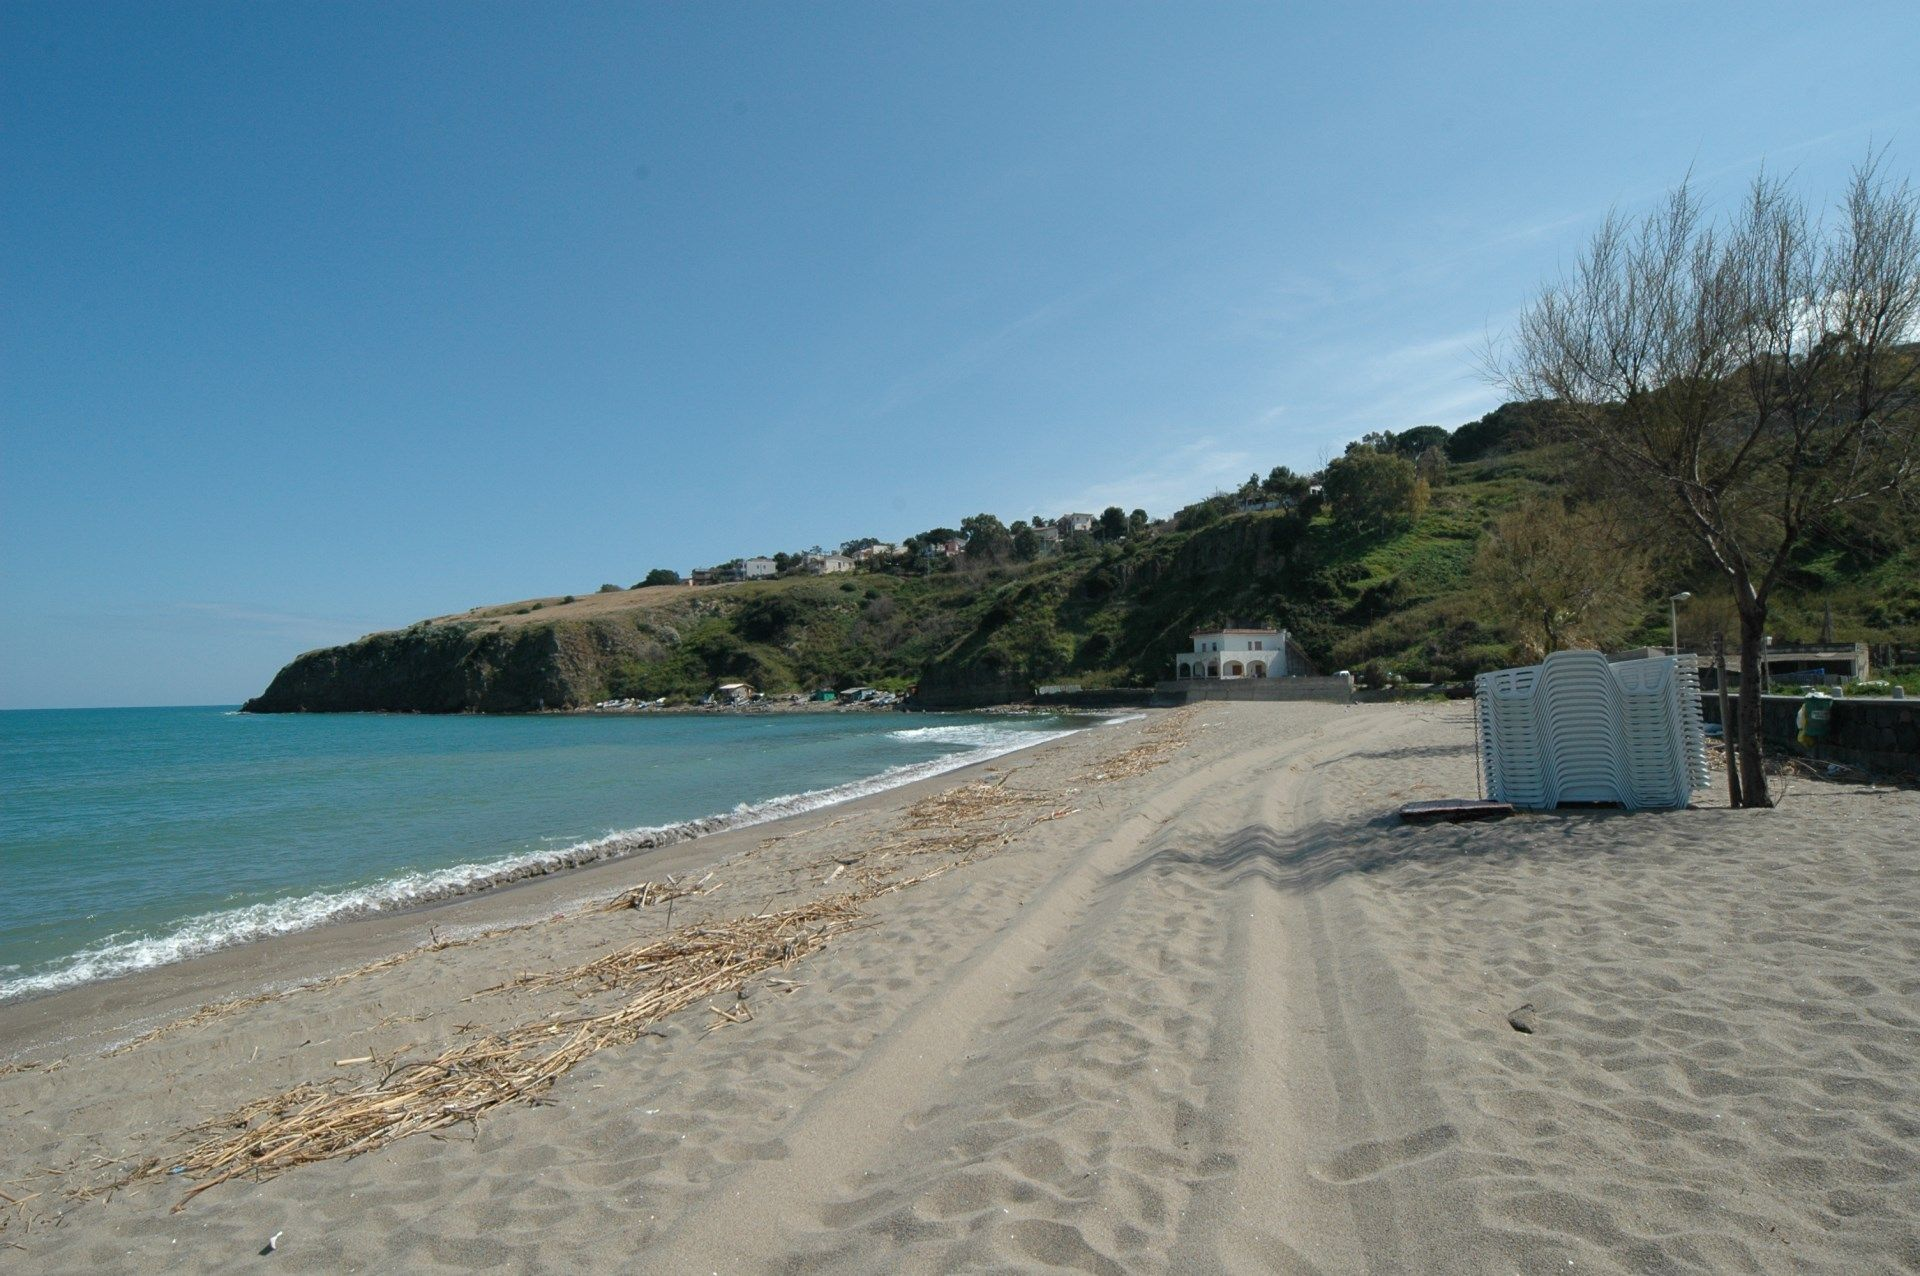 Isa bagno ~ Agnone bagni beach just south of catania swimming in sicily